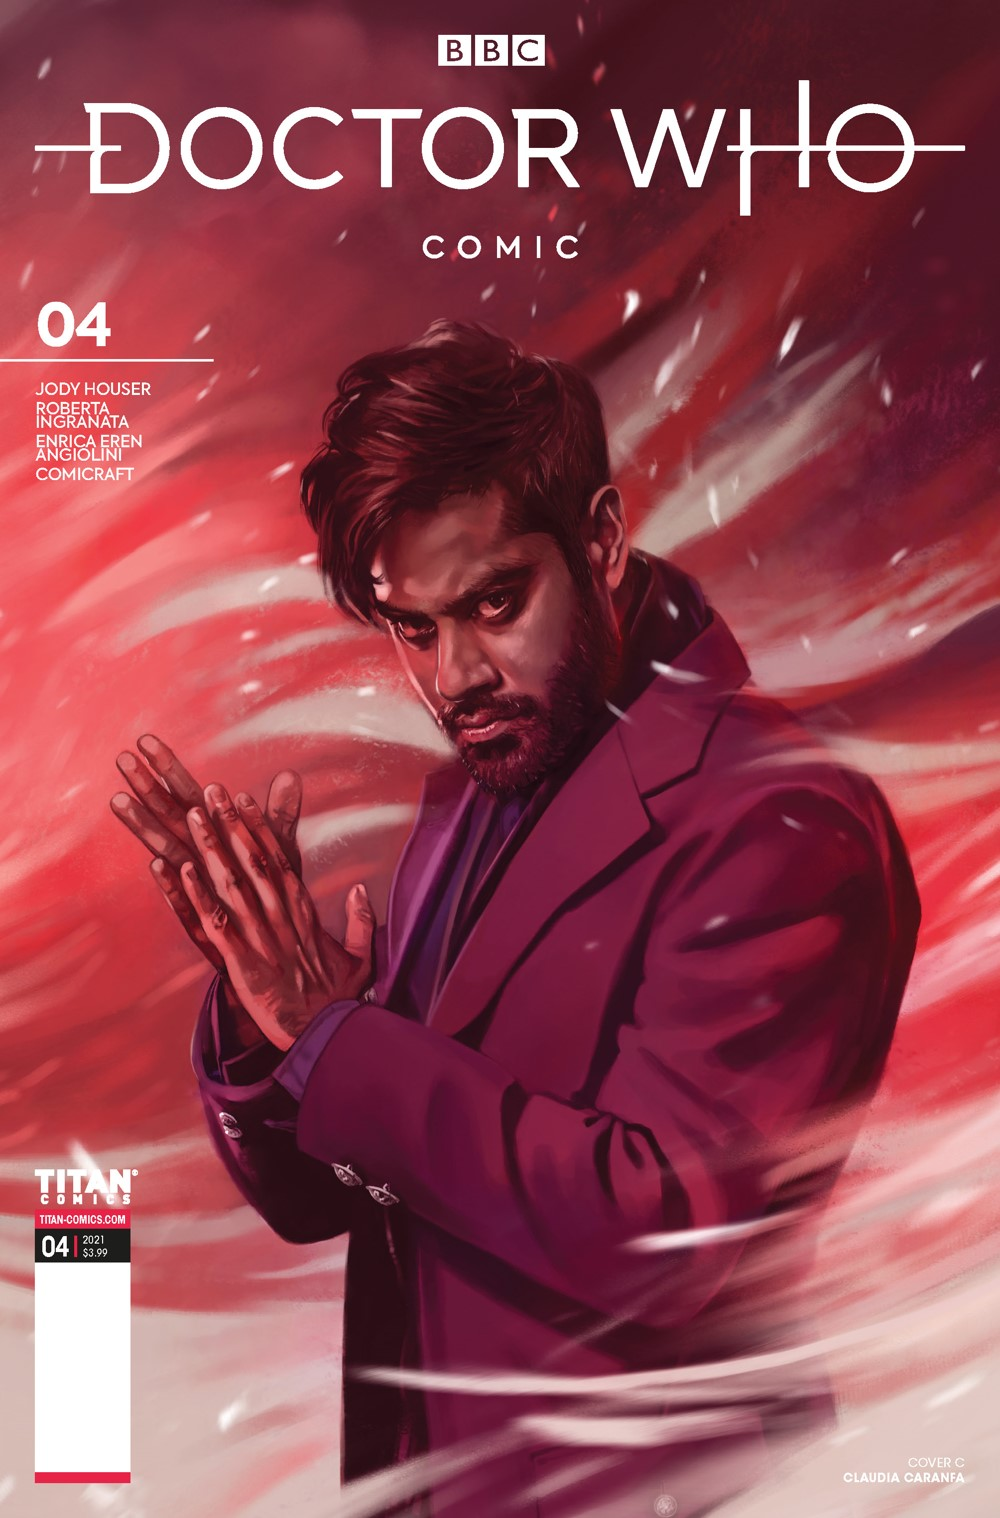 DW_Missy_4_01_COVER3 ComicList Previews: DOCTOR WHO MISSY #4